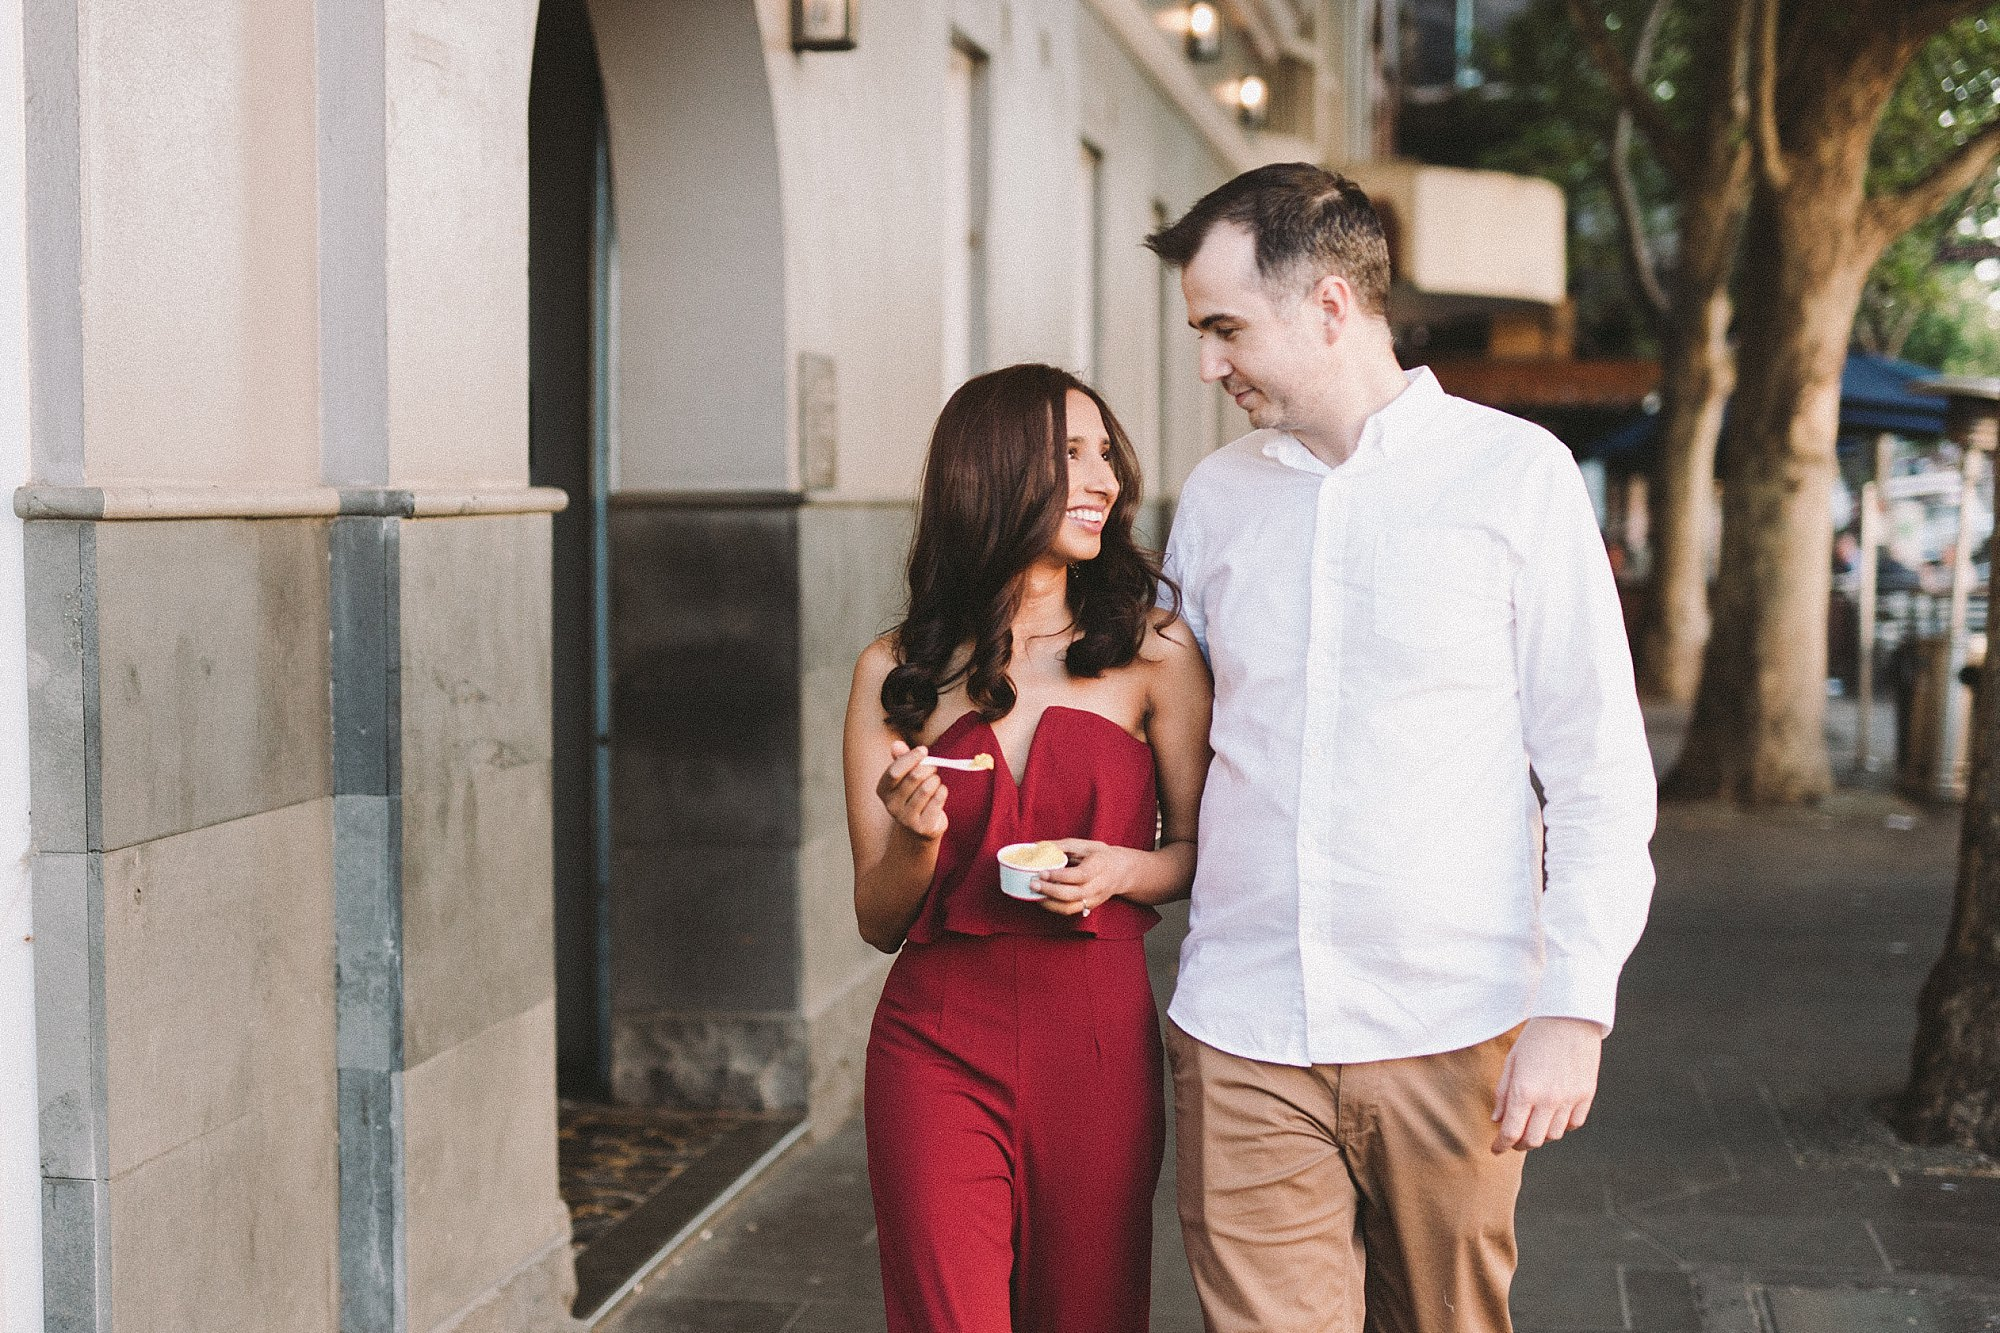 Melbourne Natural and Fun Engagement Wedding Photographer 181.JPG